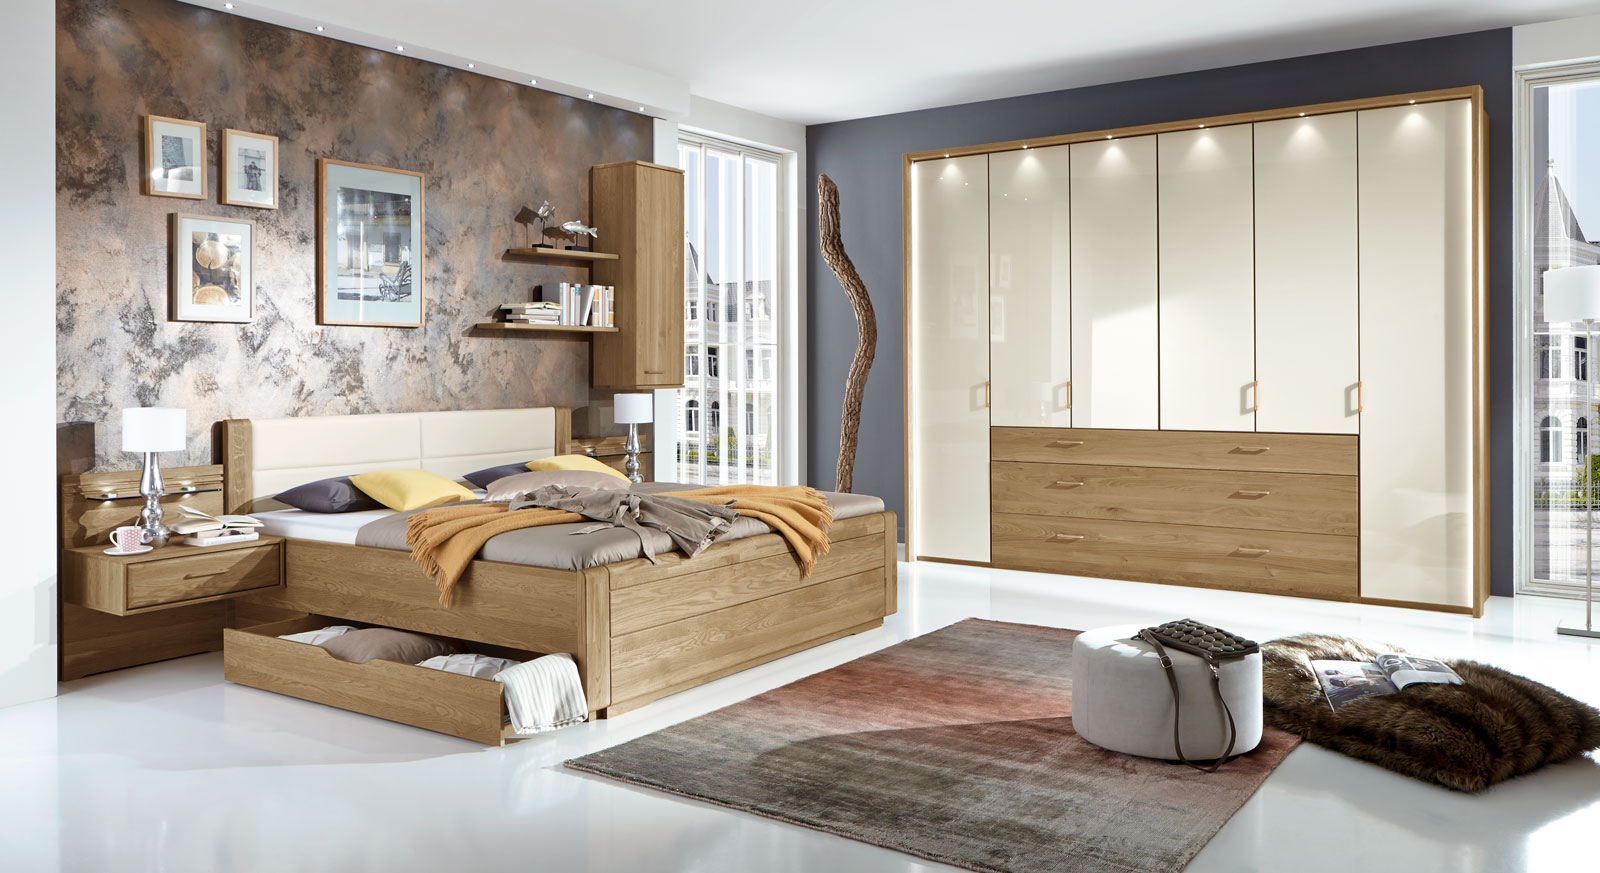 Bedroom Design Master